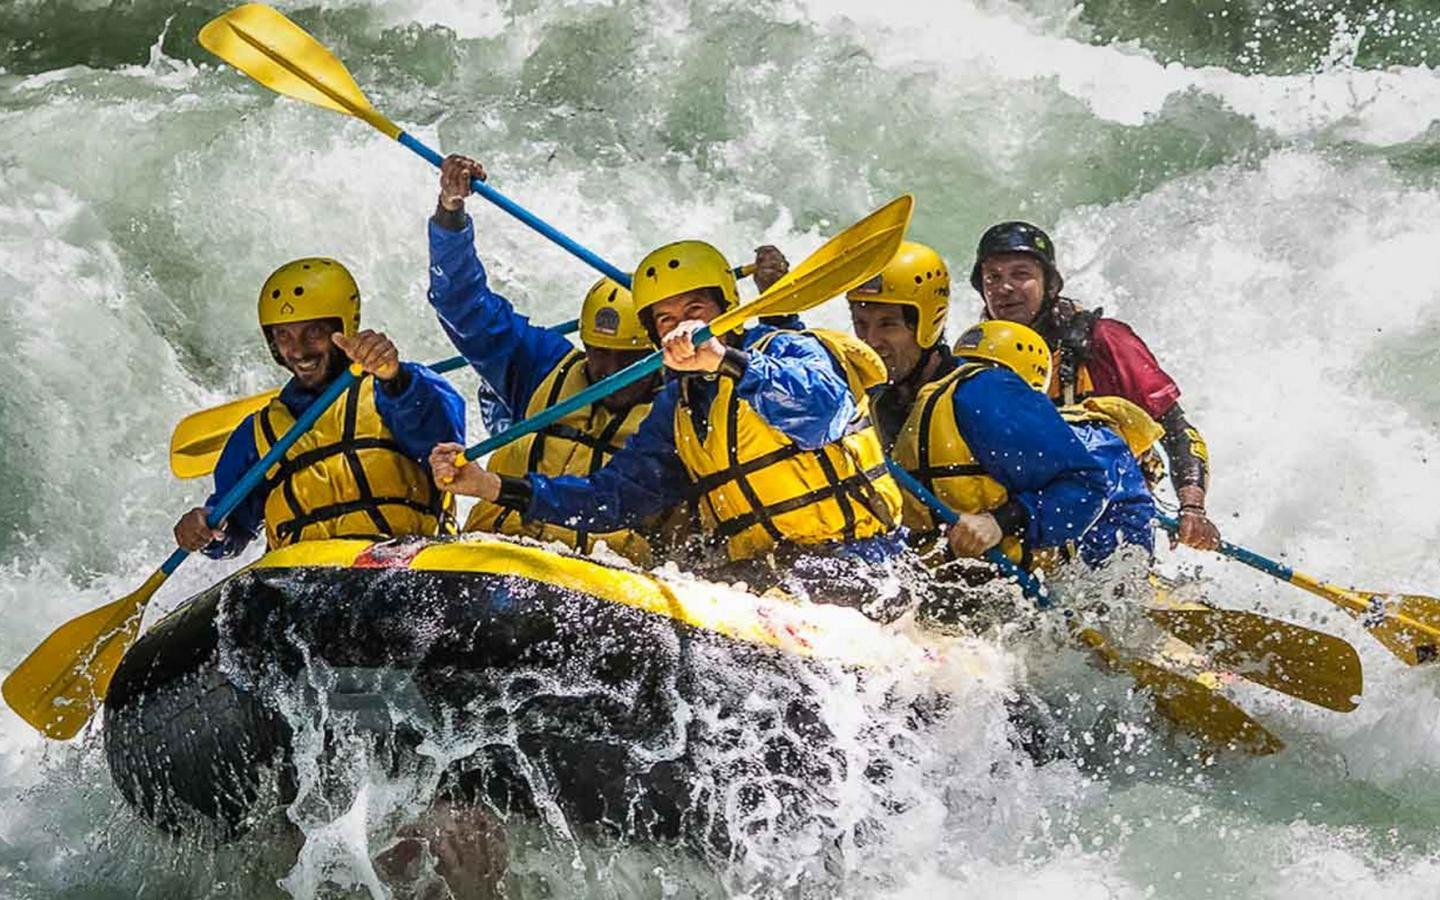 White Water Rafting Wallpapers 6